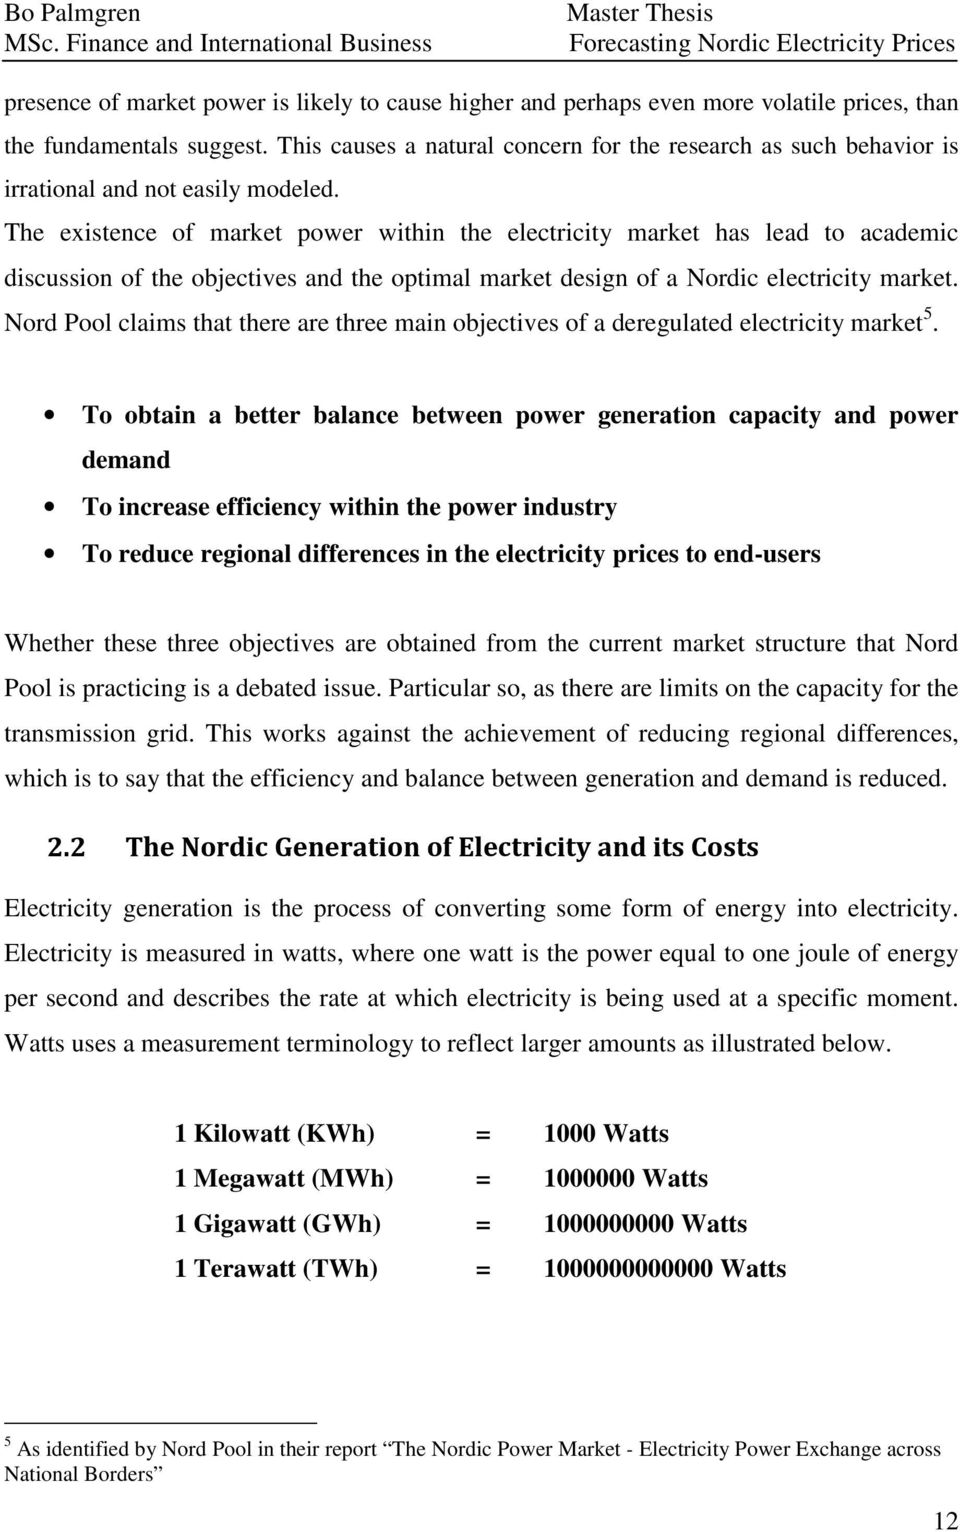 The existence of market power within the electricity market has lead to academic discussion of the objectives and the optimal market design of a Nordic electricity market.